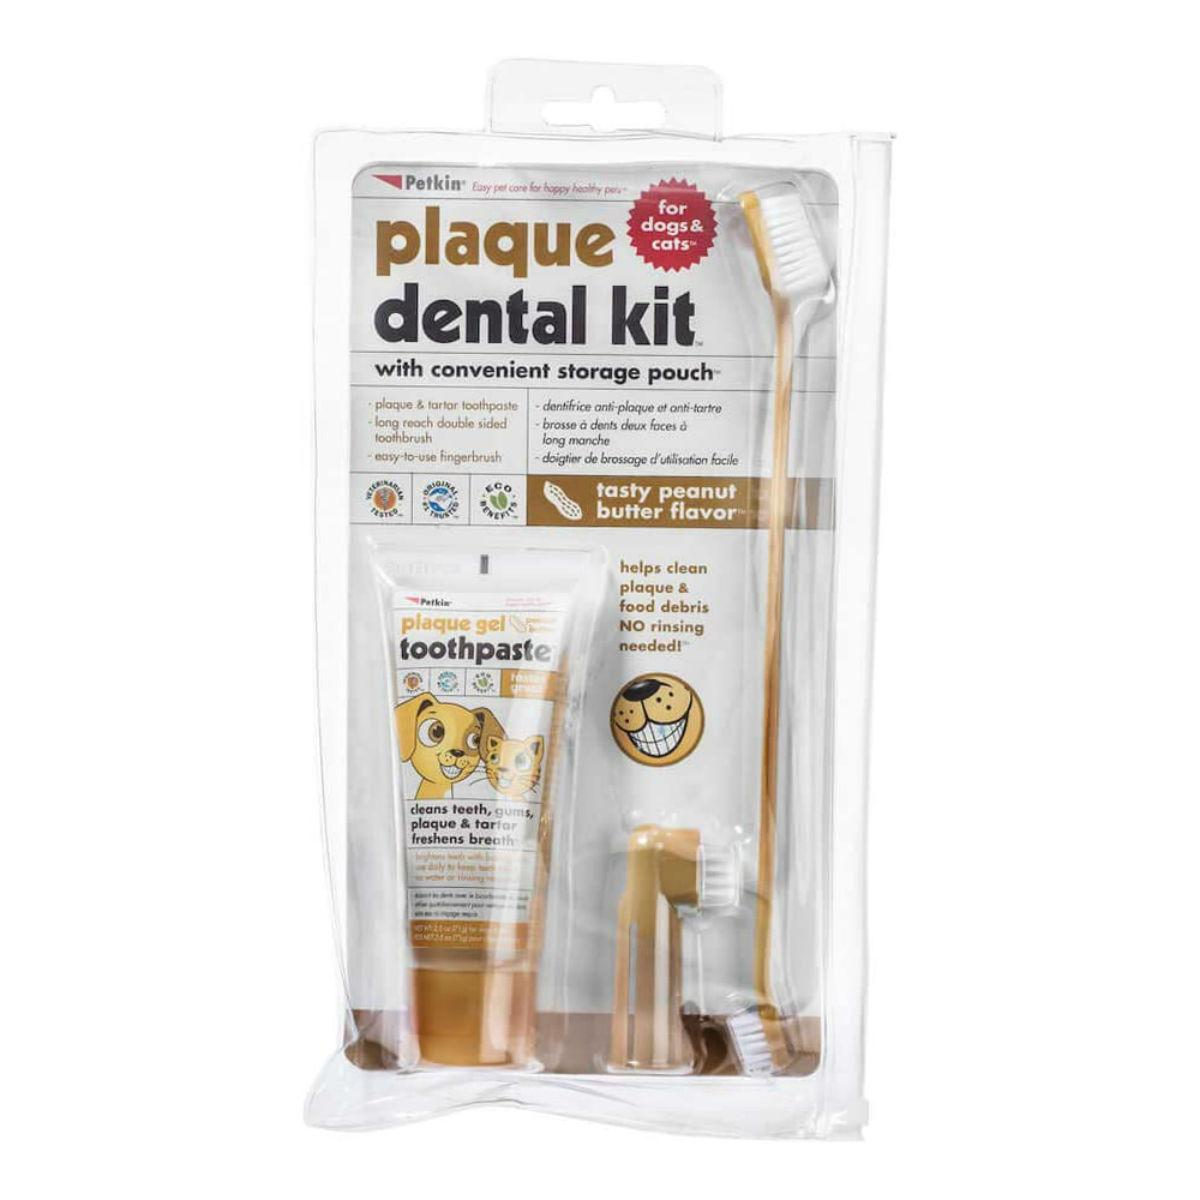 PetKin Plaque Dental Kit for Dogs - Peanut Butter